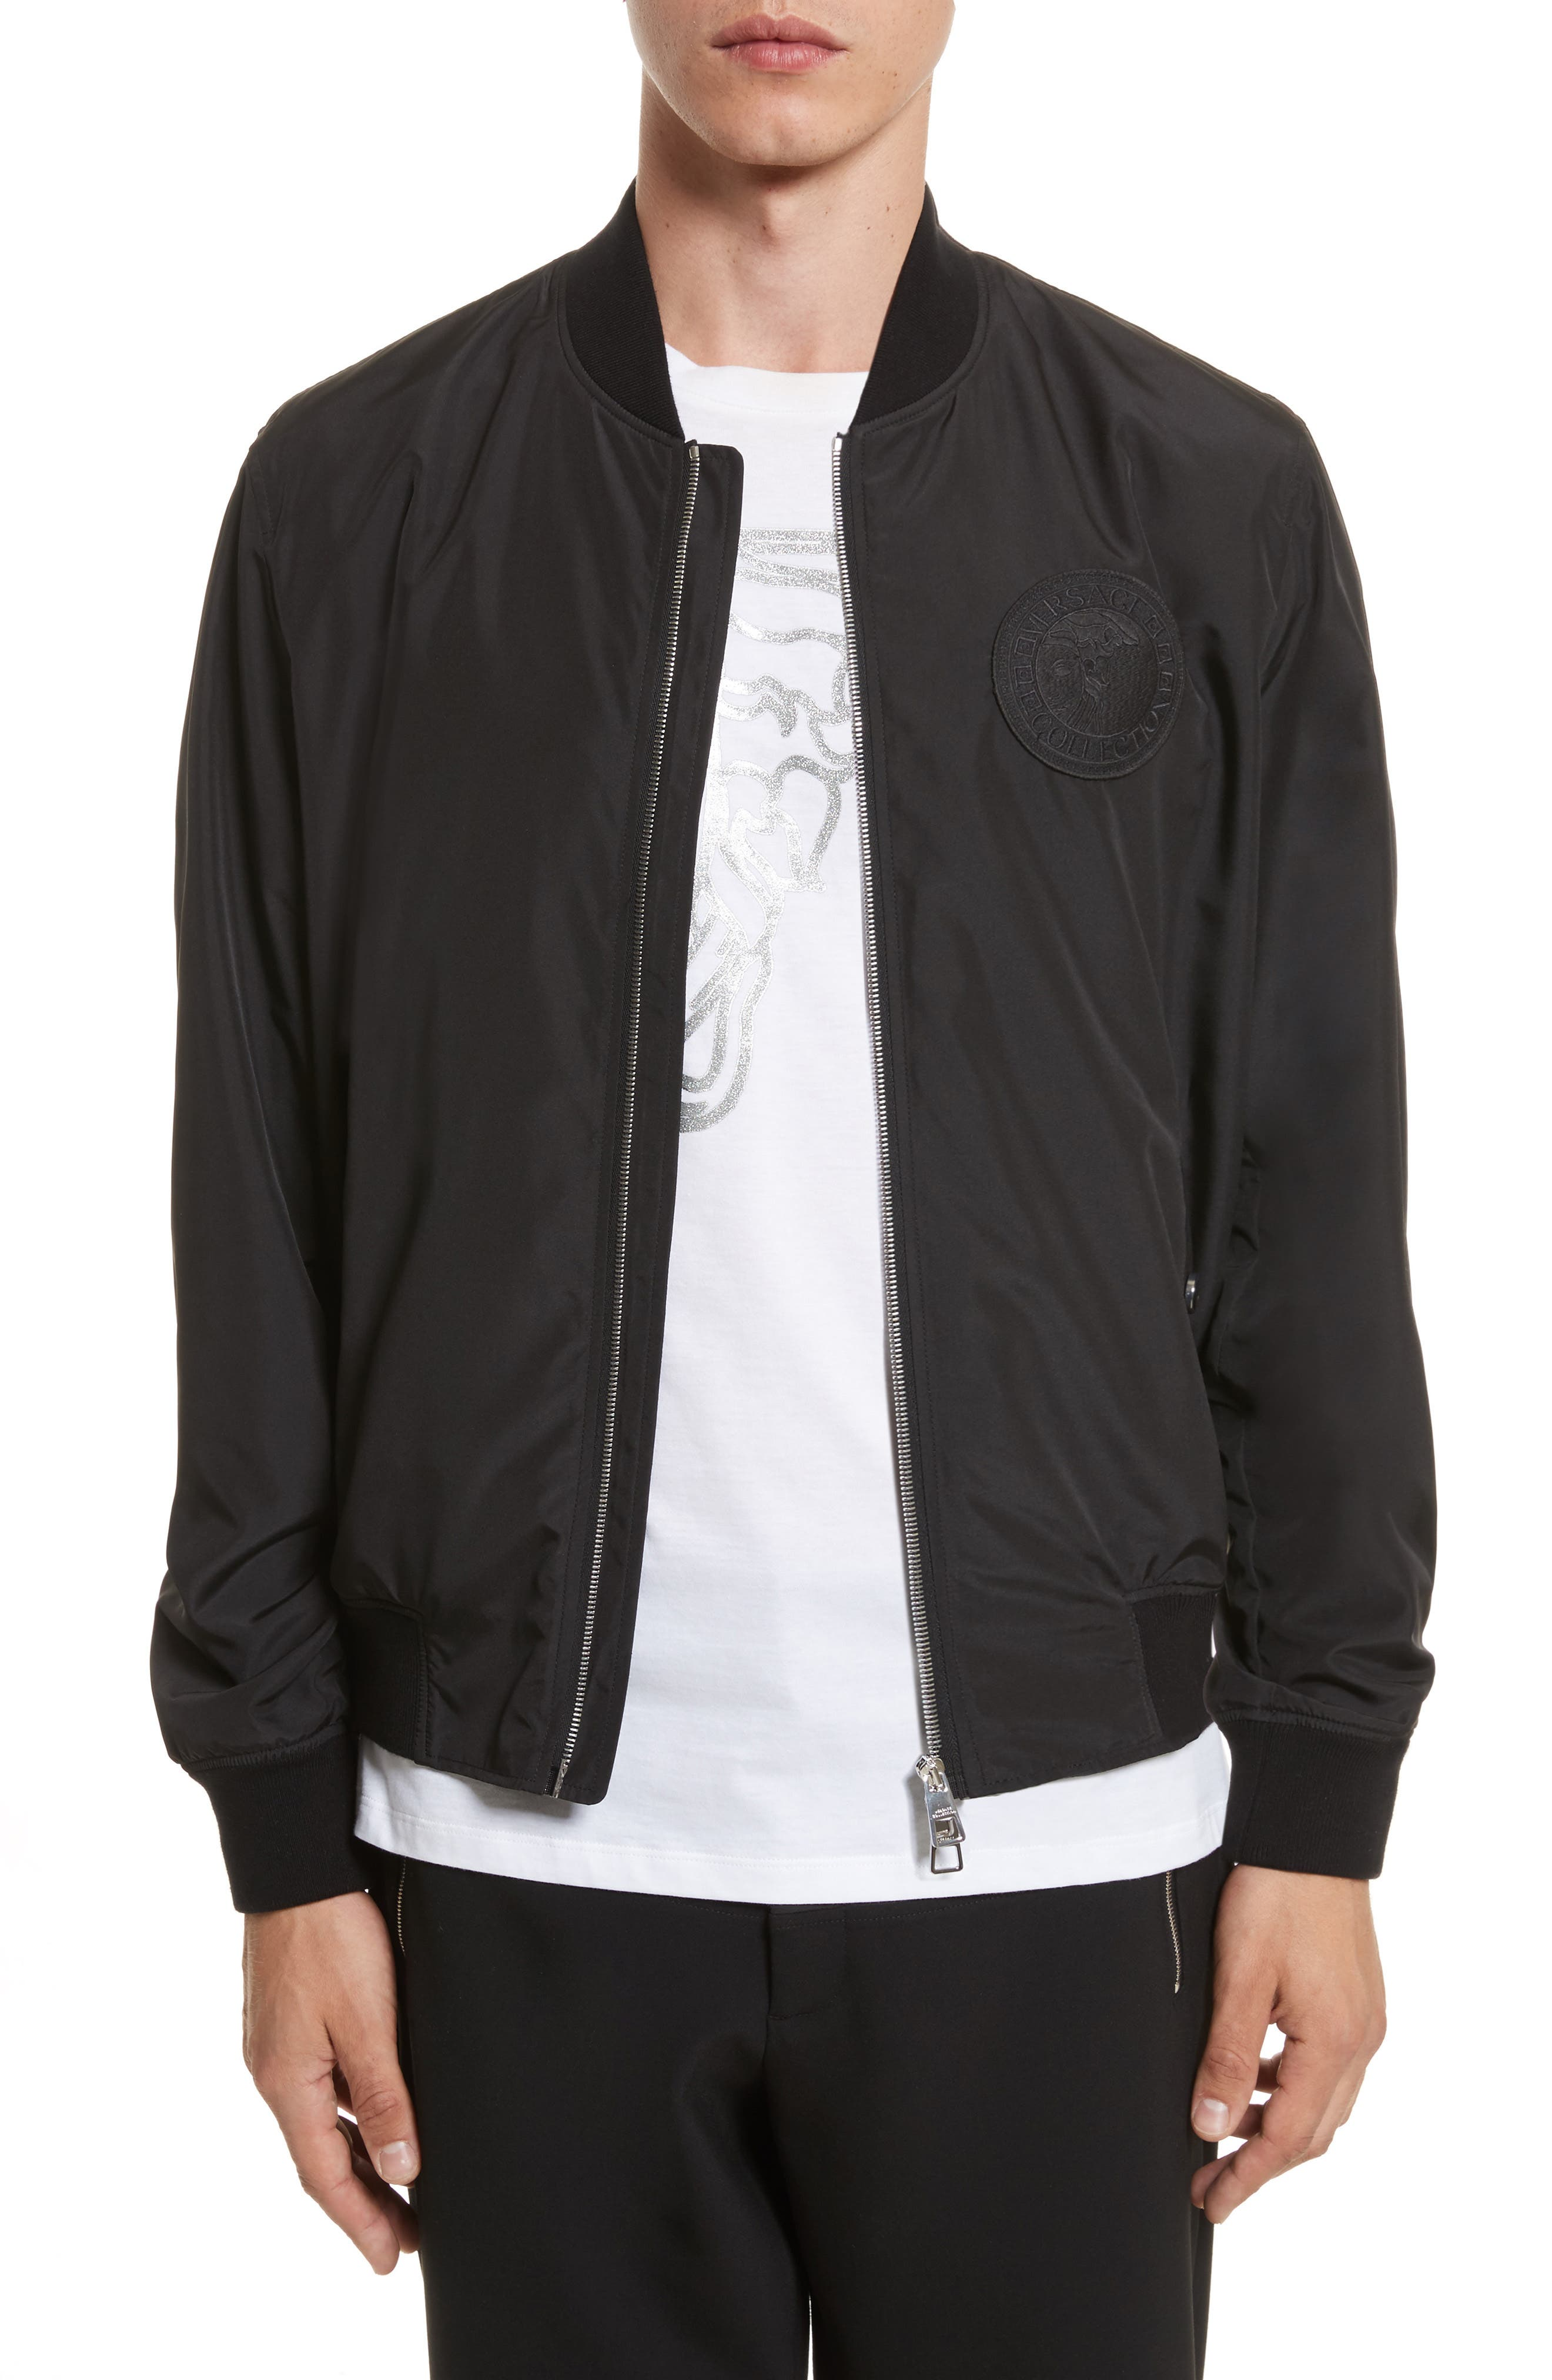 Bomber Jacket with Patch,                             Main thumbnail 1, color,                             130